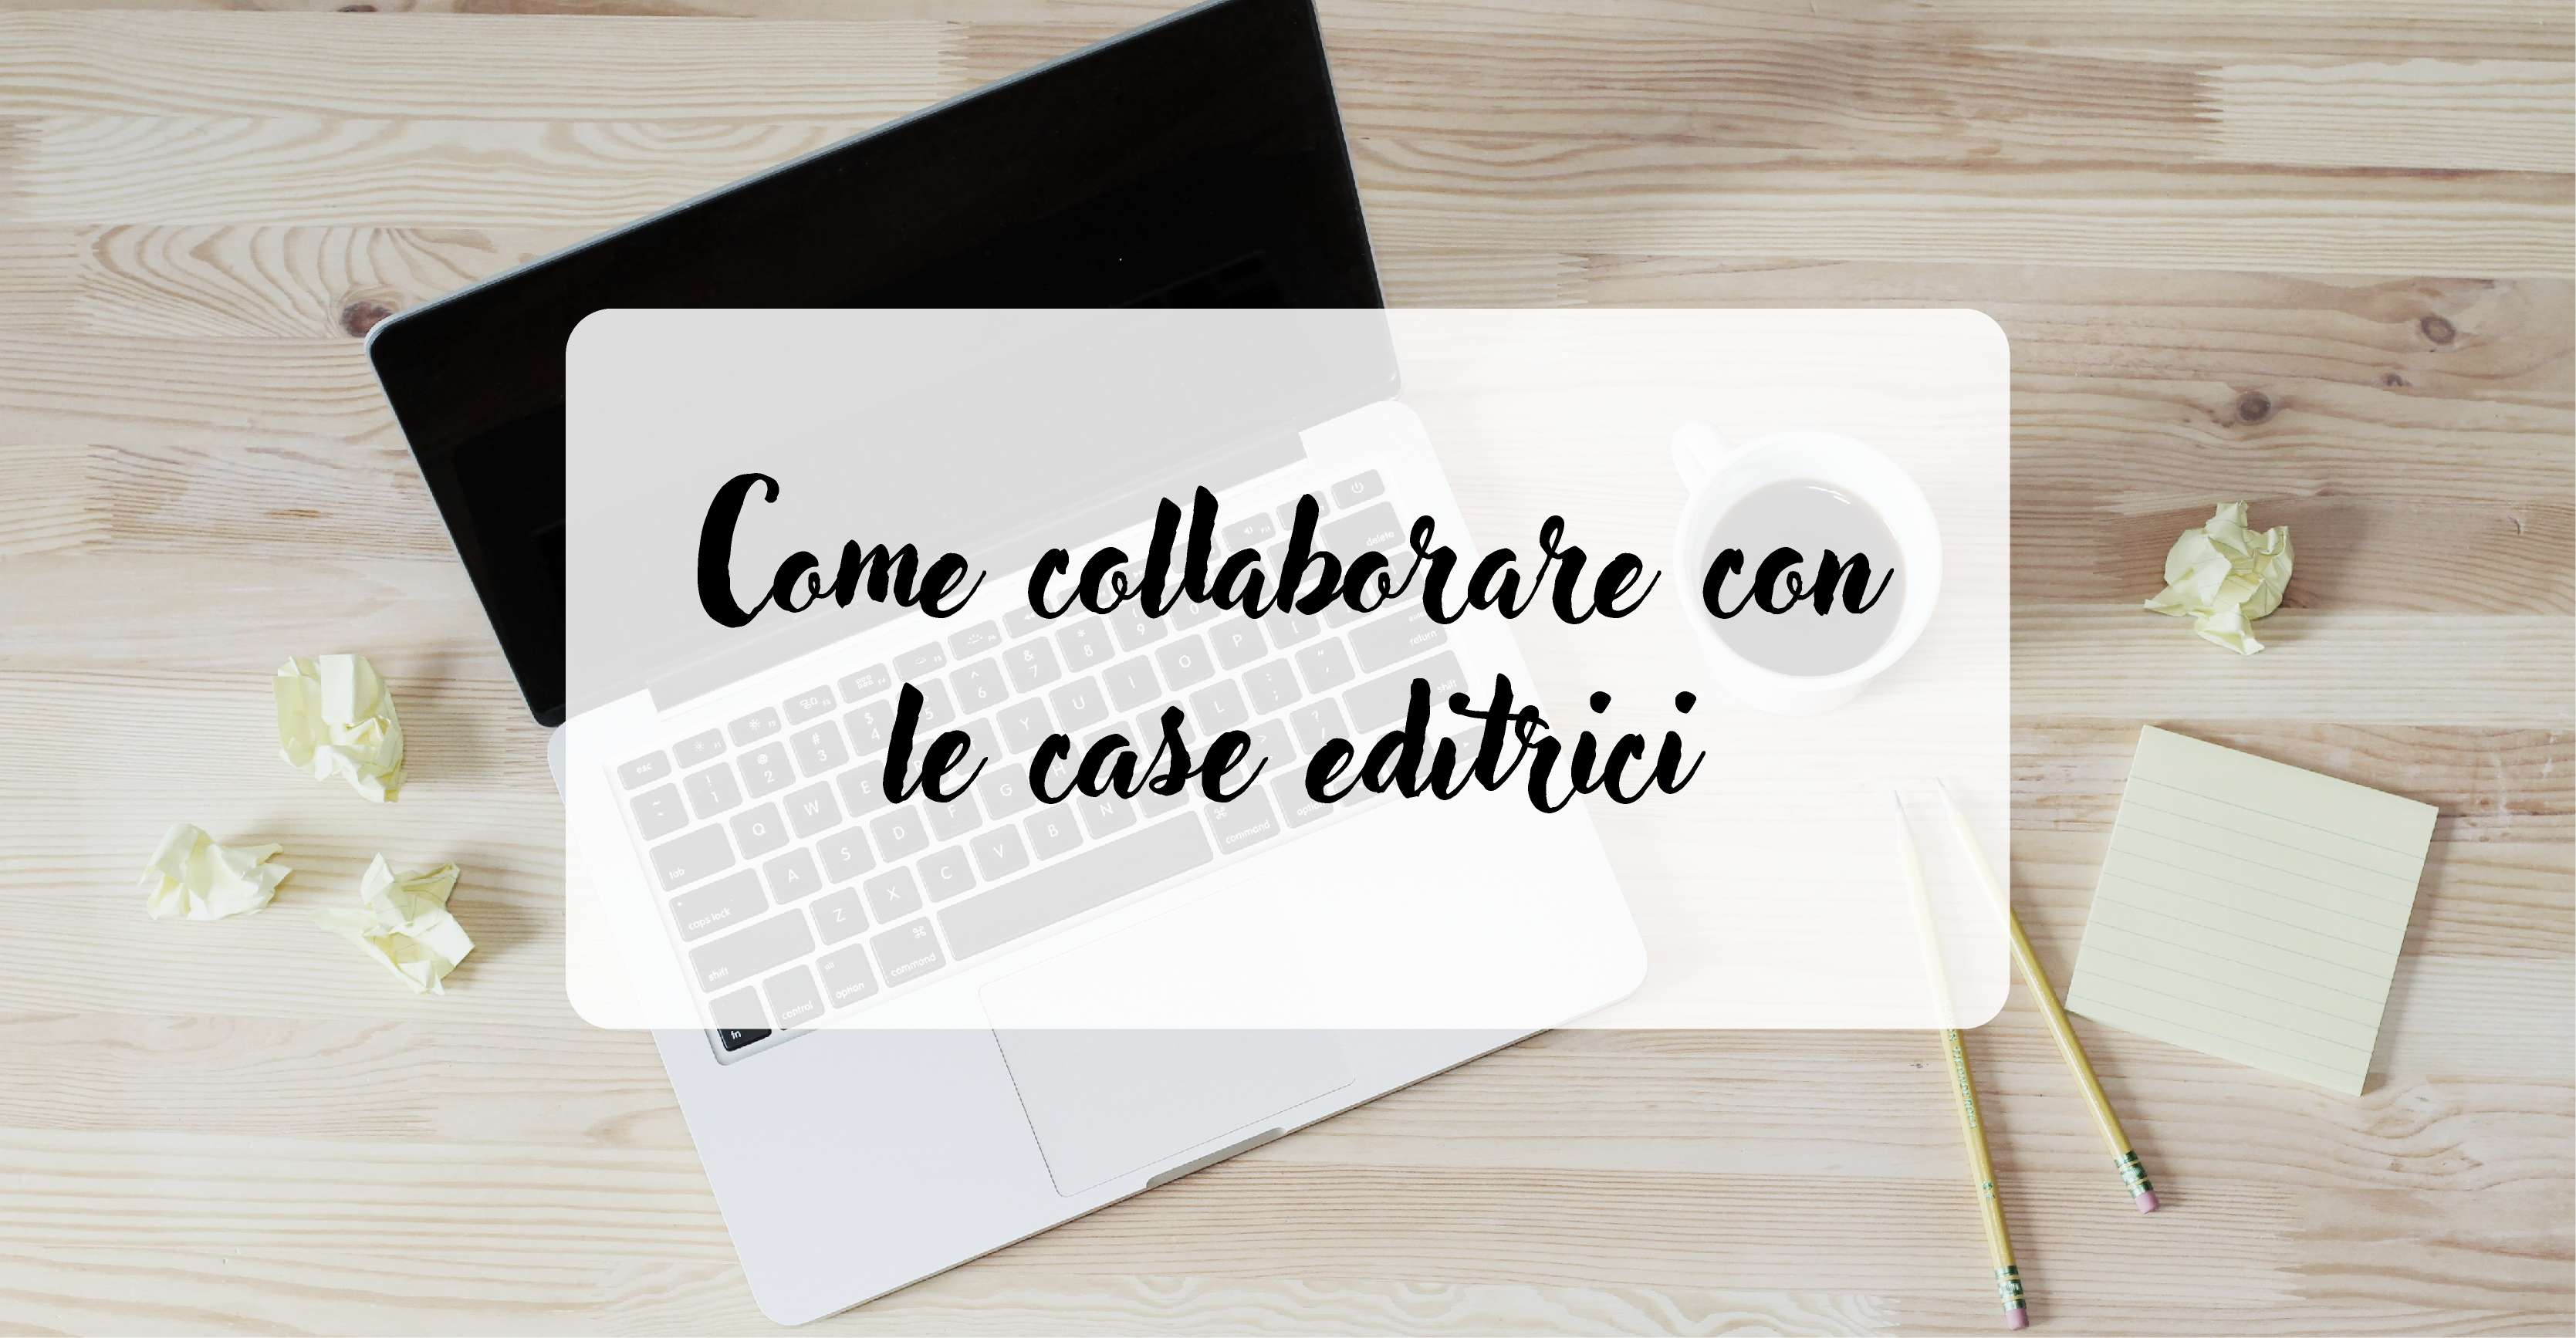 Come collaborare